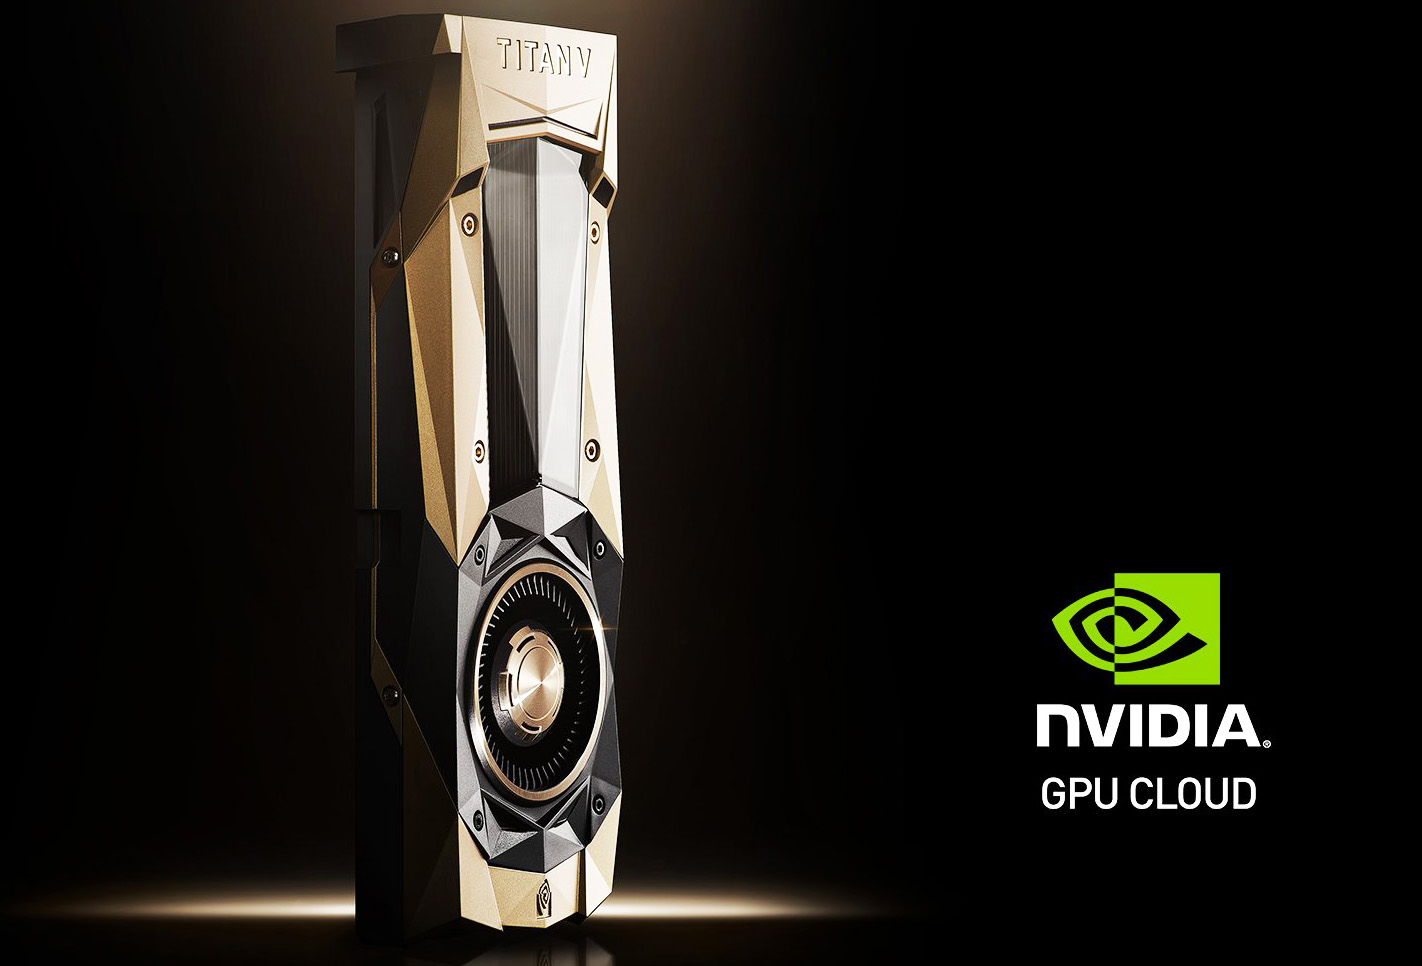 Photo of Forget everything you know: NVIDIA's Volta architecture premieres in the home market